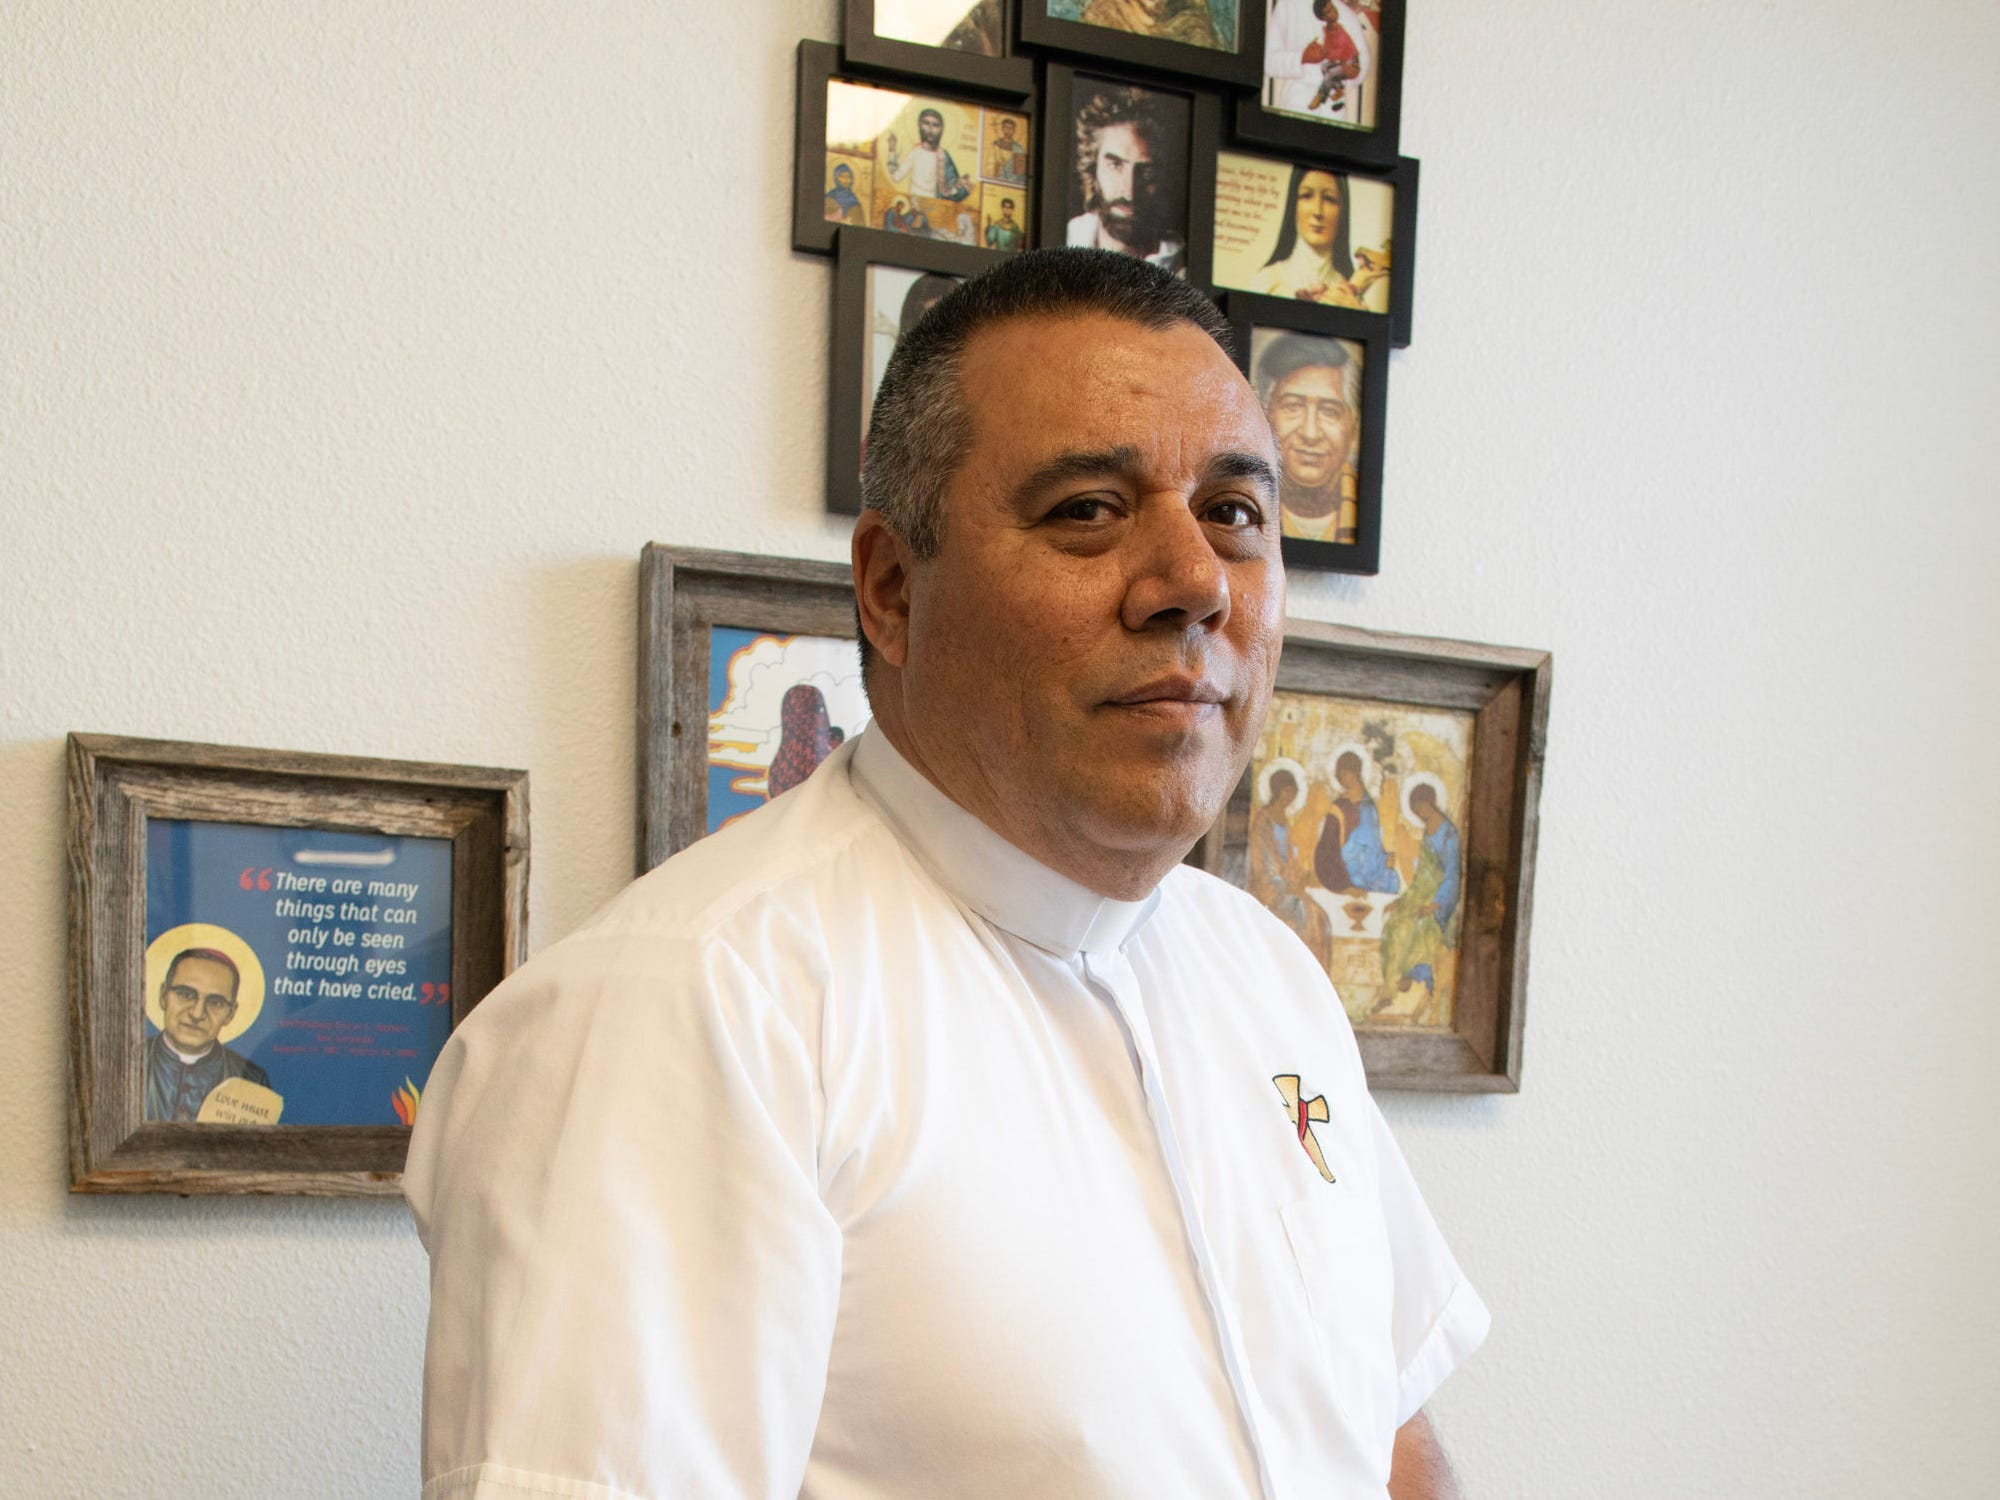 Deacon Loni Briseño of Project Oak Tree in his parish office in Las Cruces.